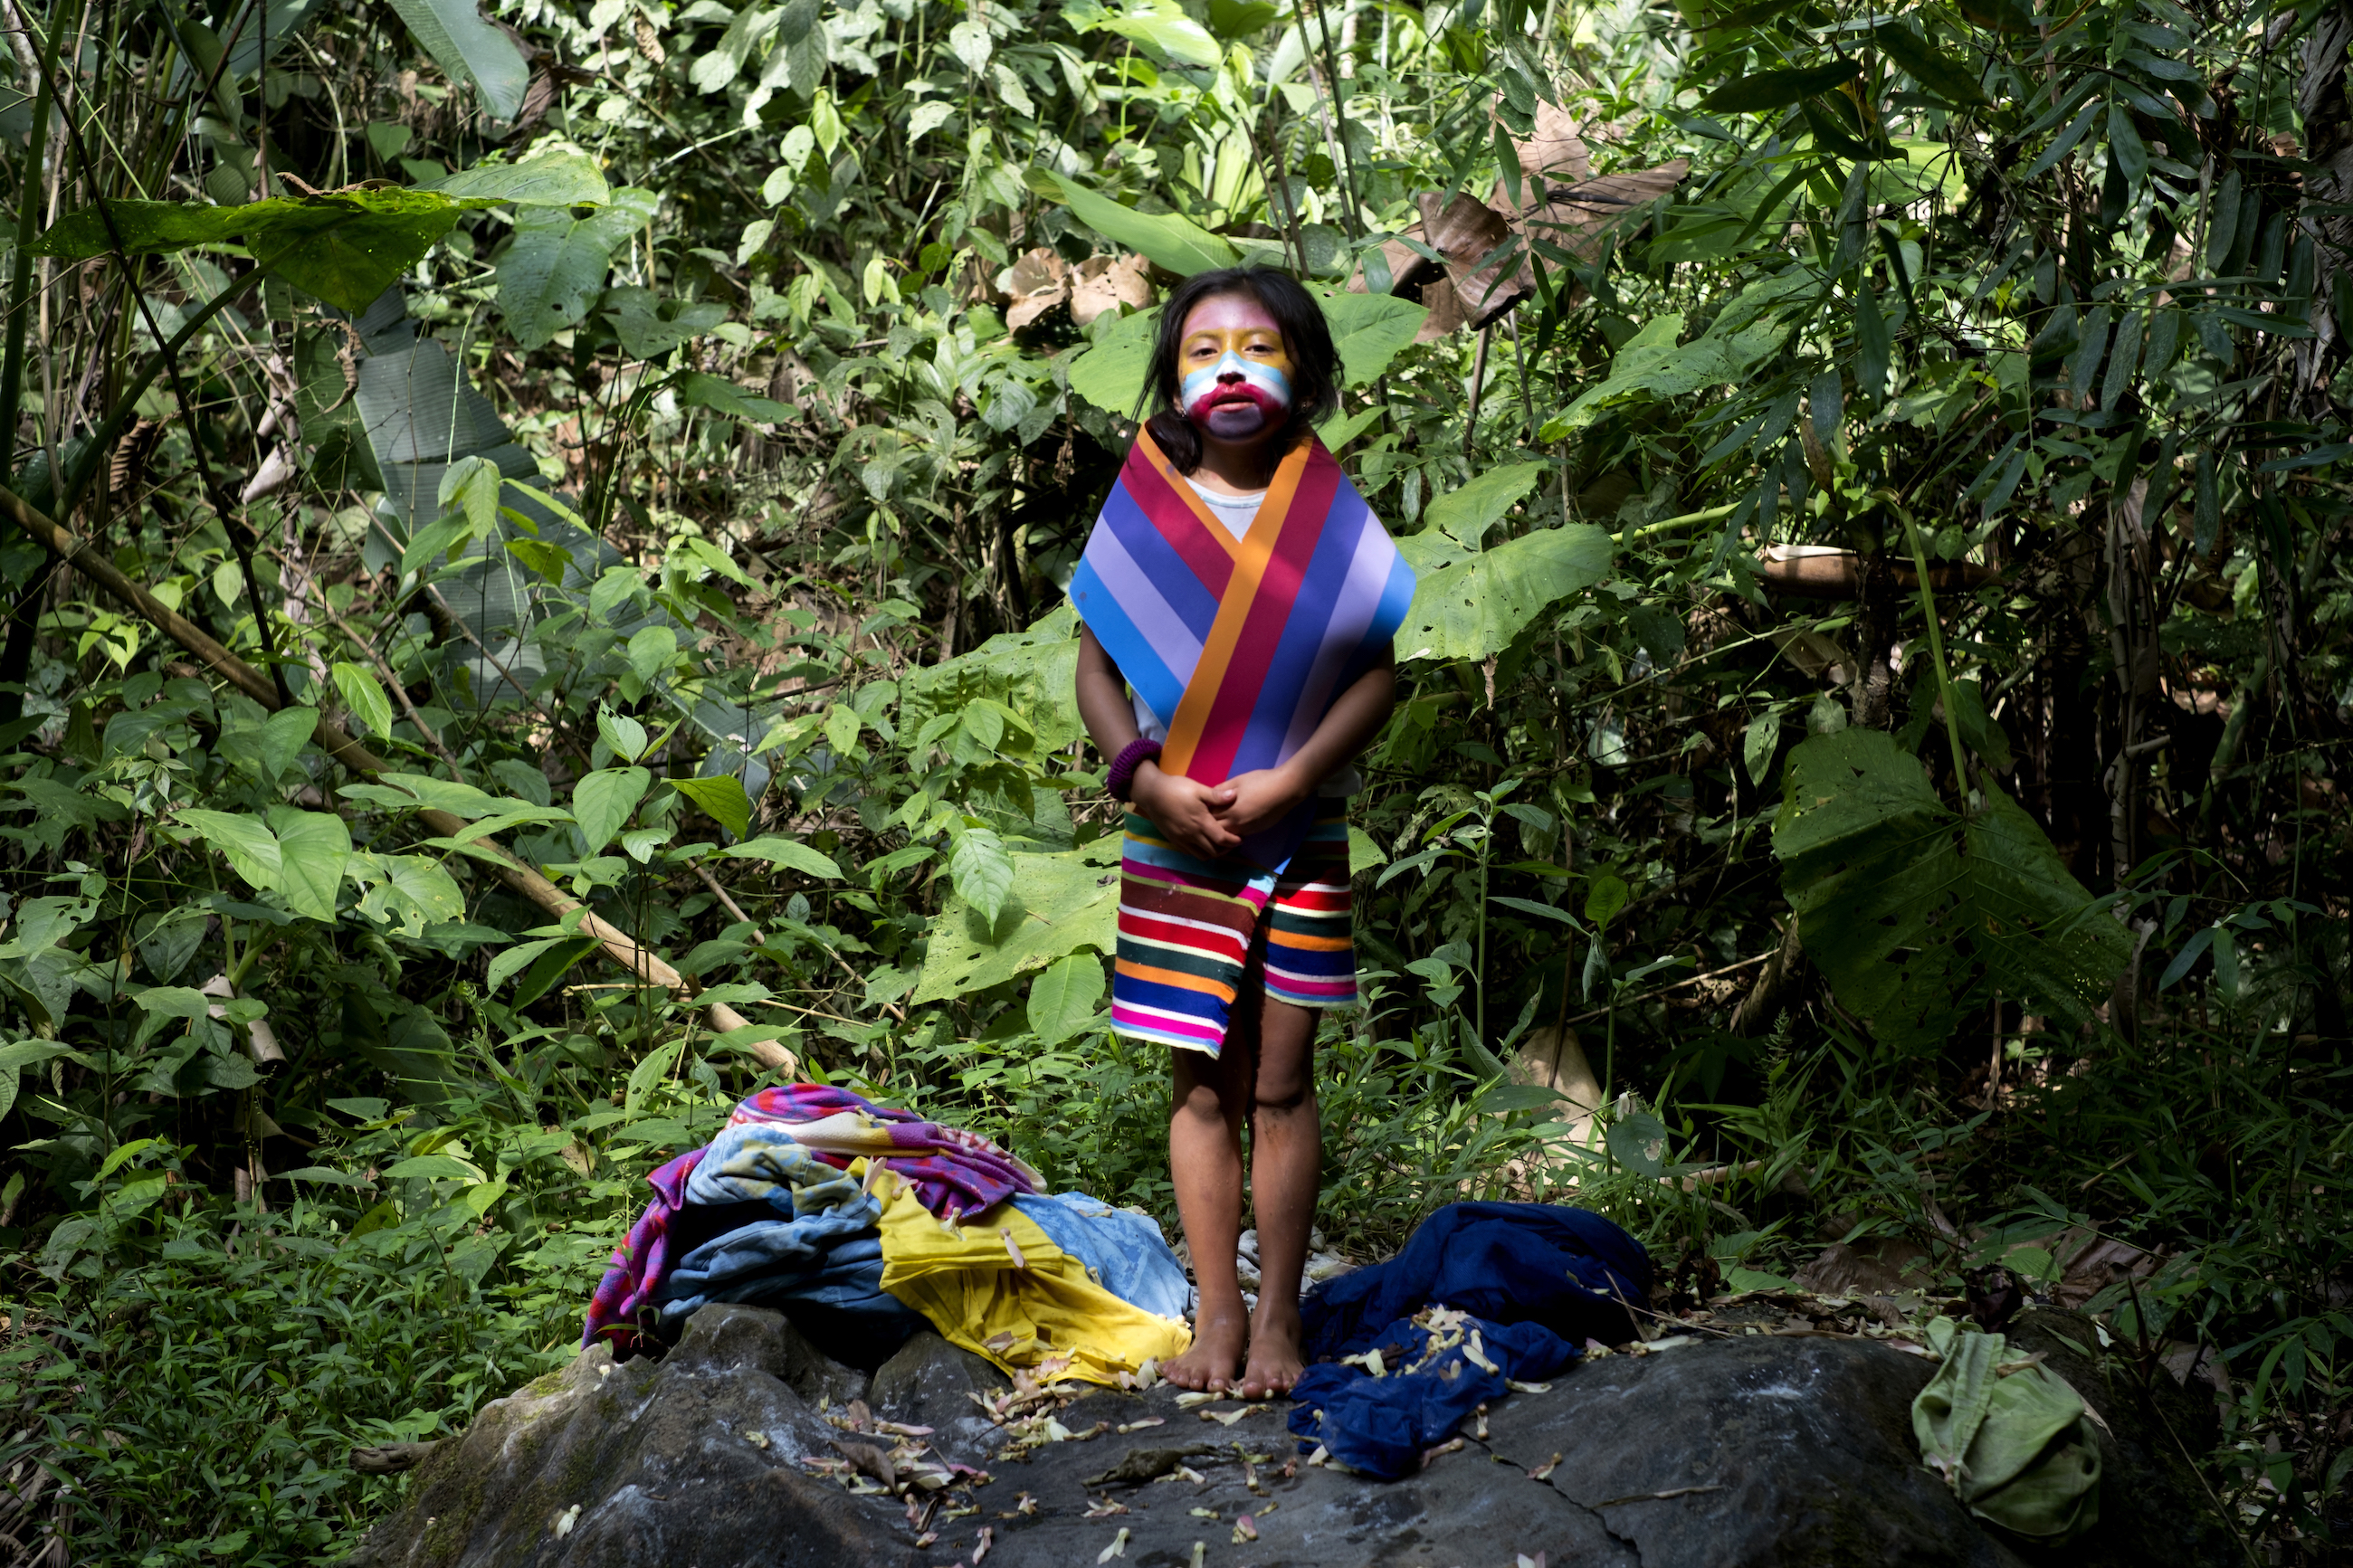 Pumpu (butterfly in English) paints her face and uses the fabrics of her moder to play as if she would be interpreting the myth of the girl who becomes the rainbow. Photo taken in the river Toaochi, Ecuador. (2013) © Emilia Lloret / Native